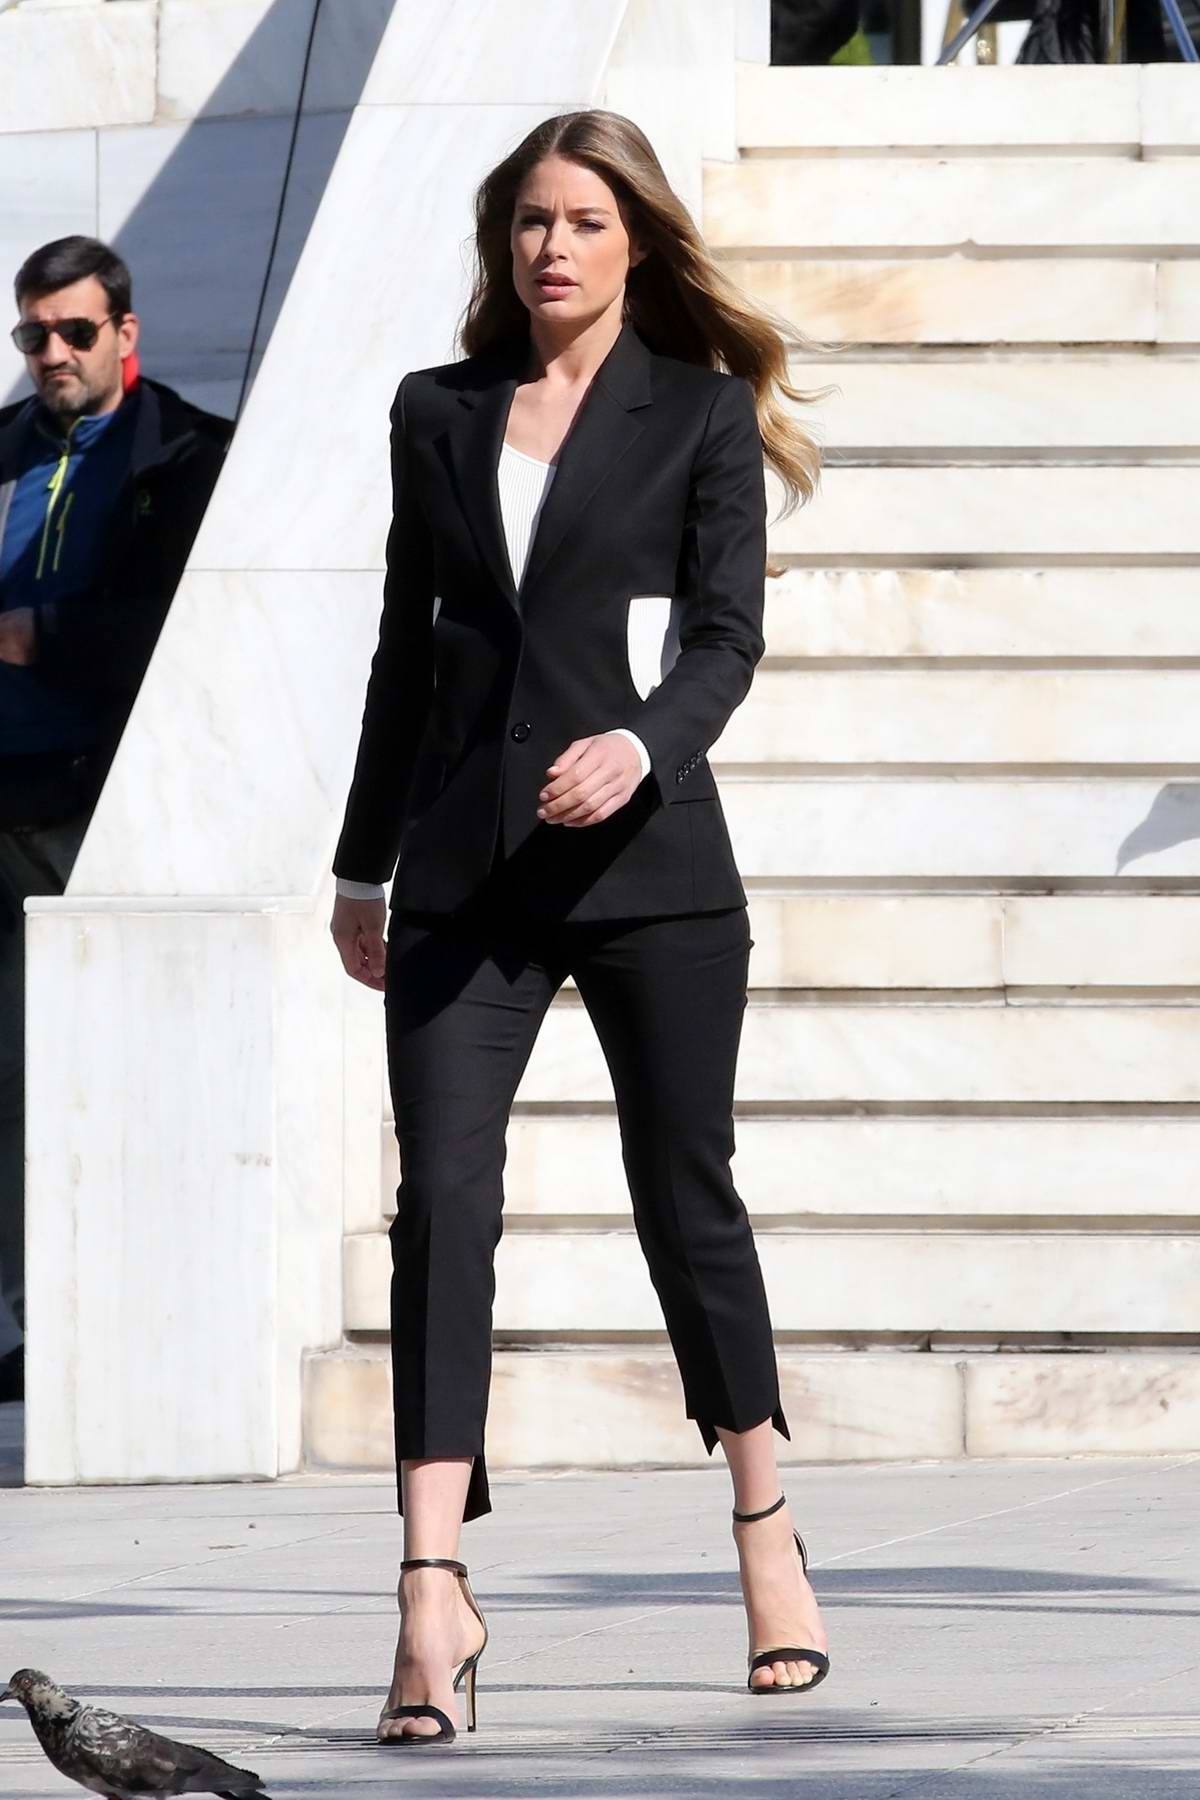 Doutzen Kroes poses in a black pantsuit during a L'Oreal photoshoot in Athens, Greece